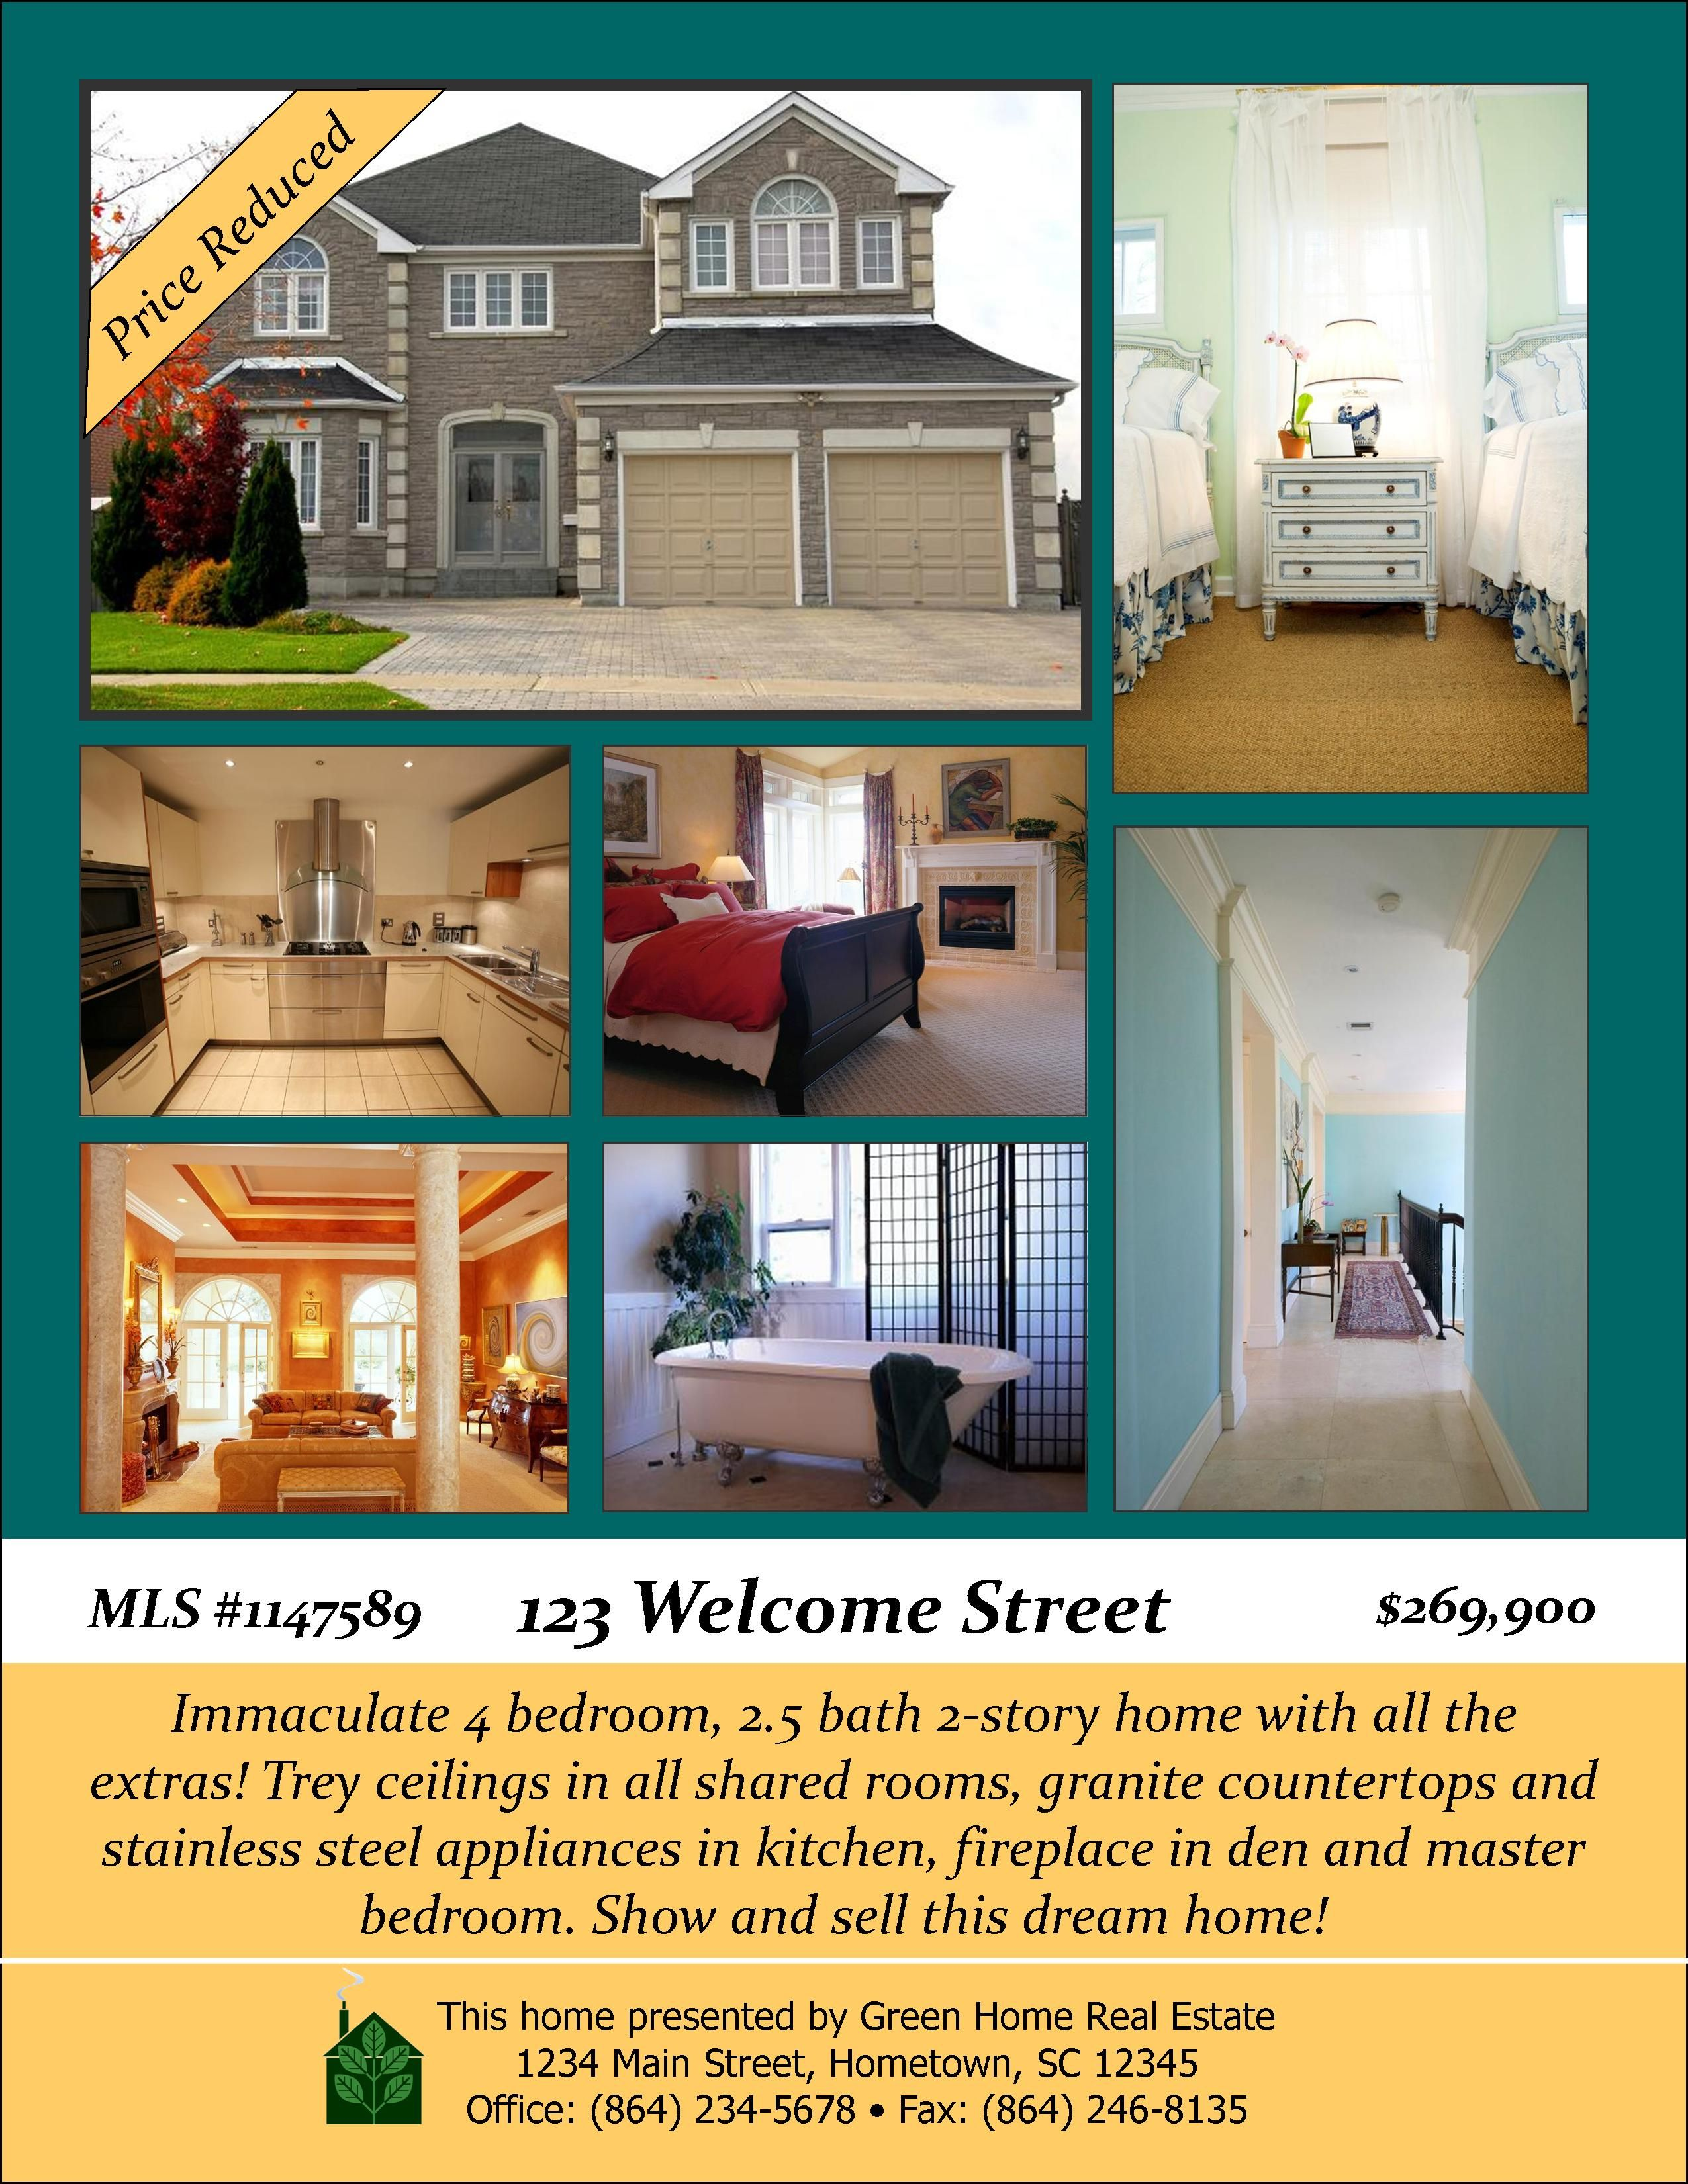 Real Estate Flyer Ideas | Open House Designs | Real Estate Flyers,  Booklets, Postcards  Open House Templates